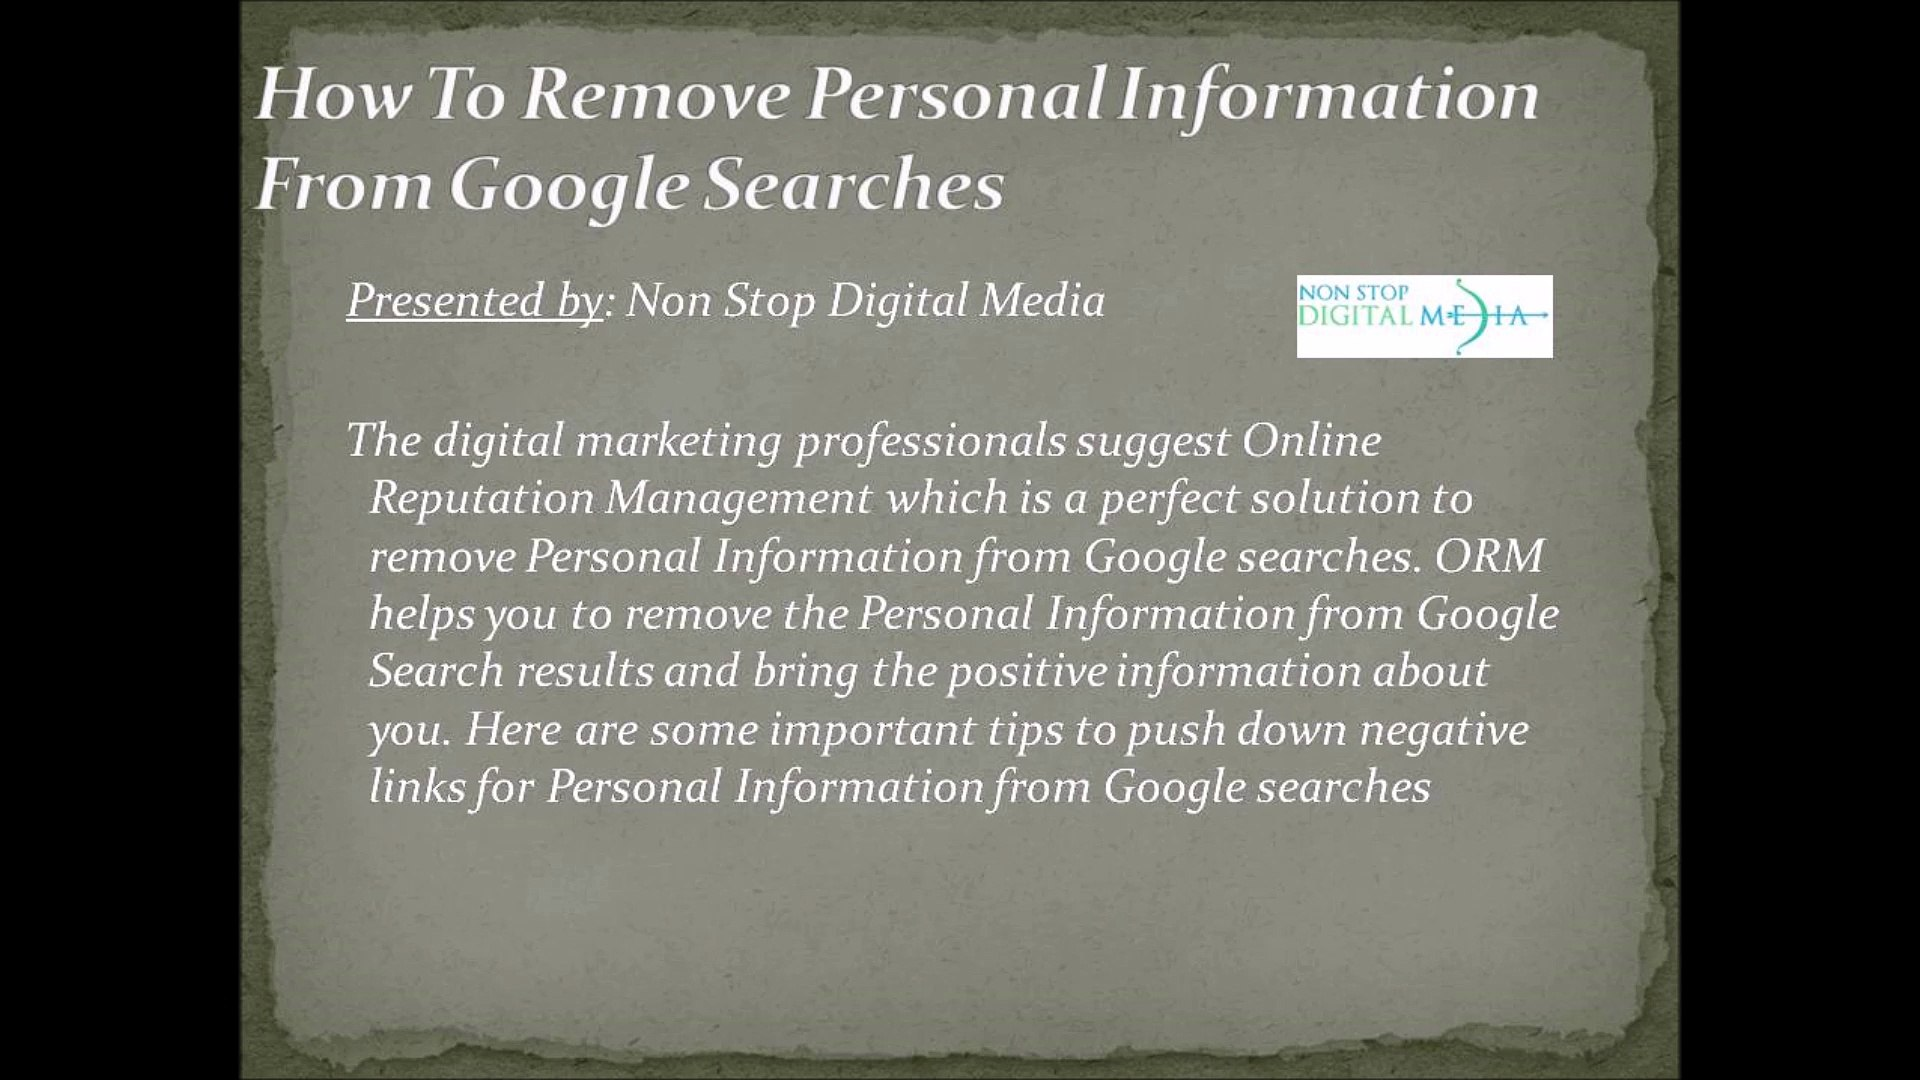 How To Remove Personal Information From Google Searches